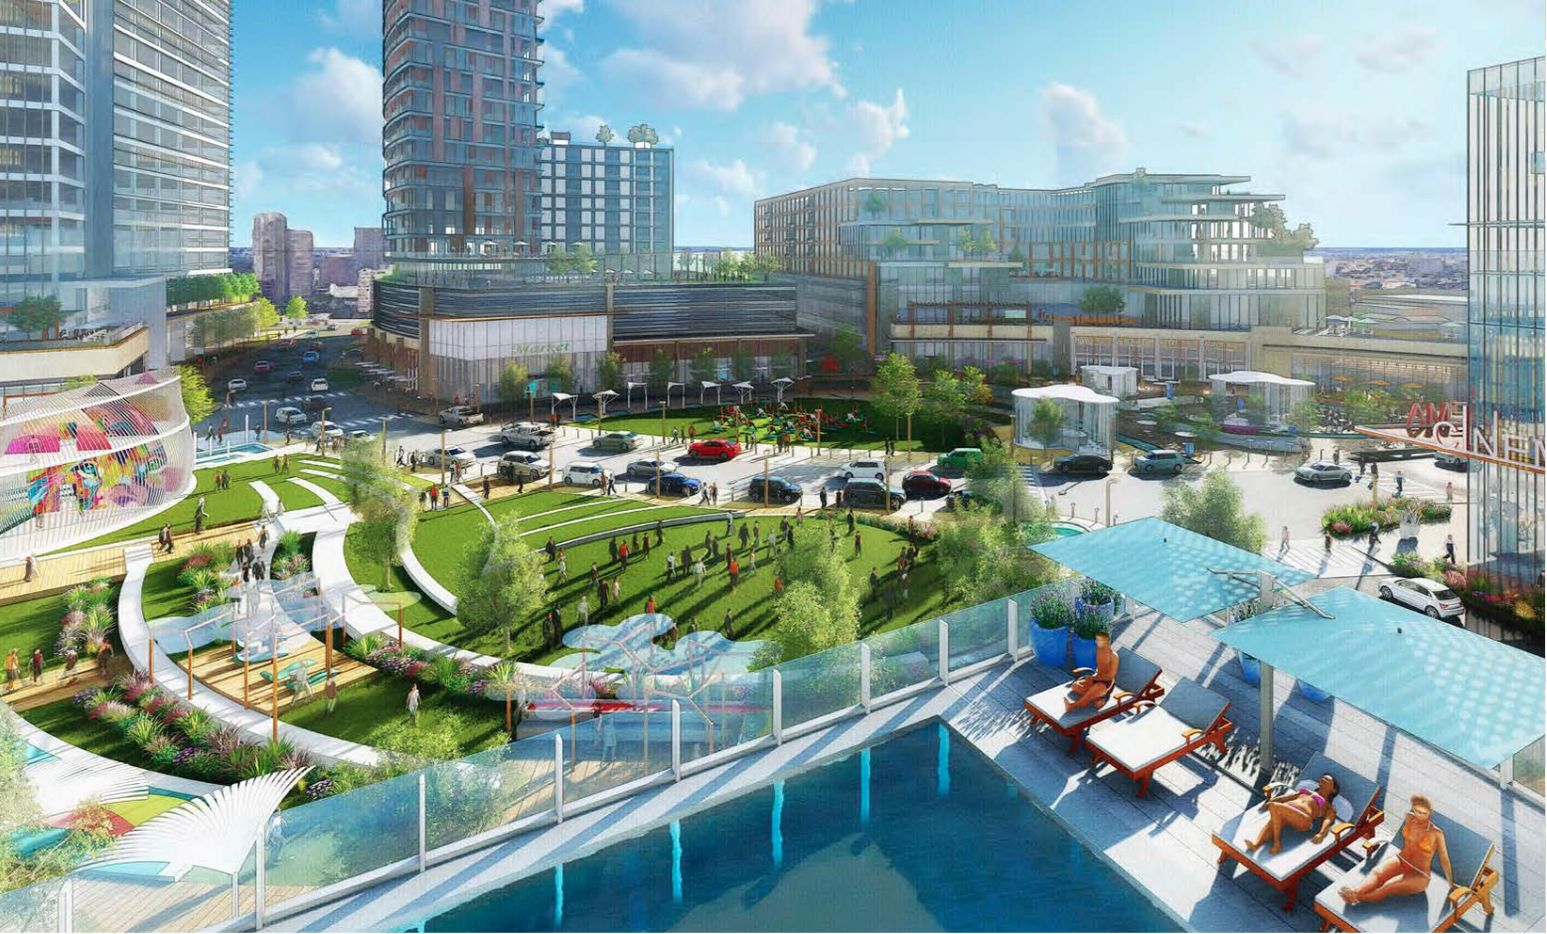 The mixed-use project is planned to include apartments and a luxury hotel.